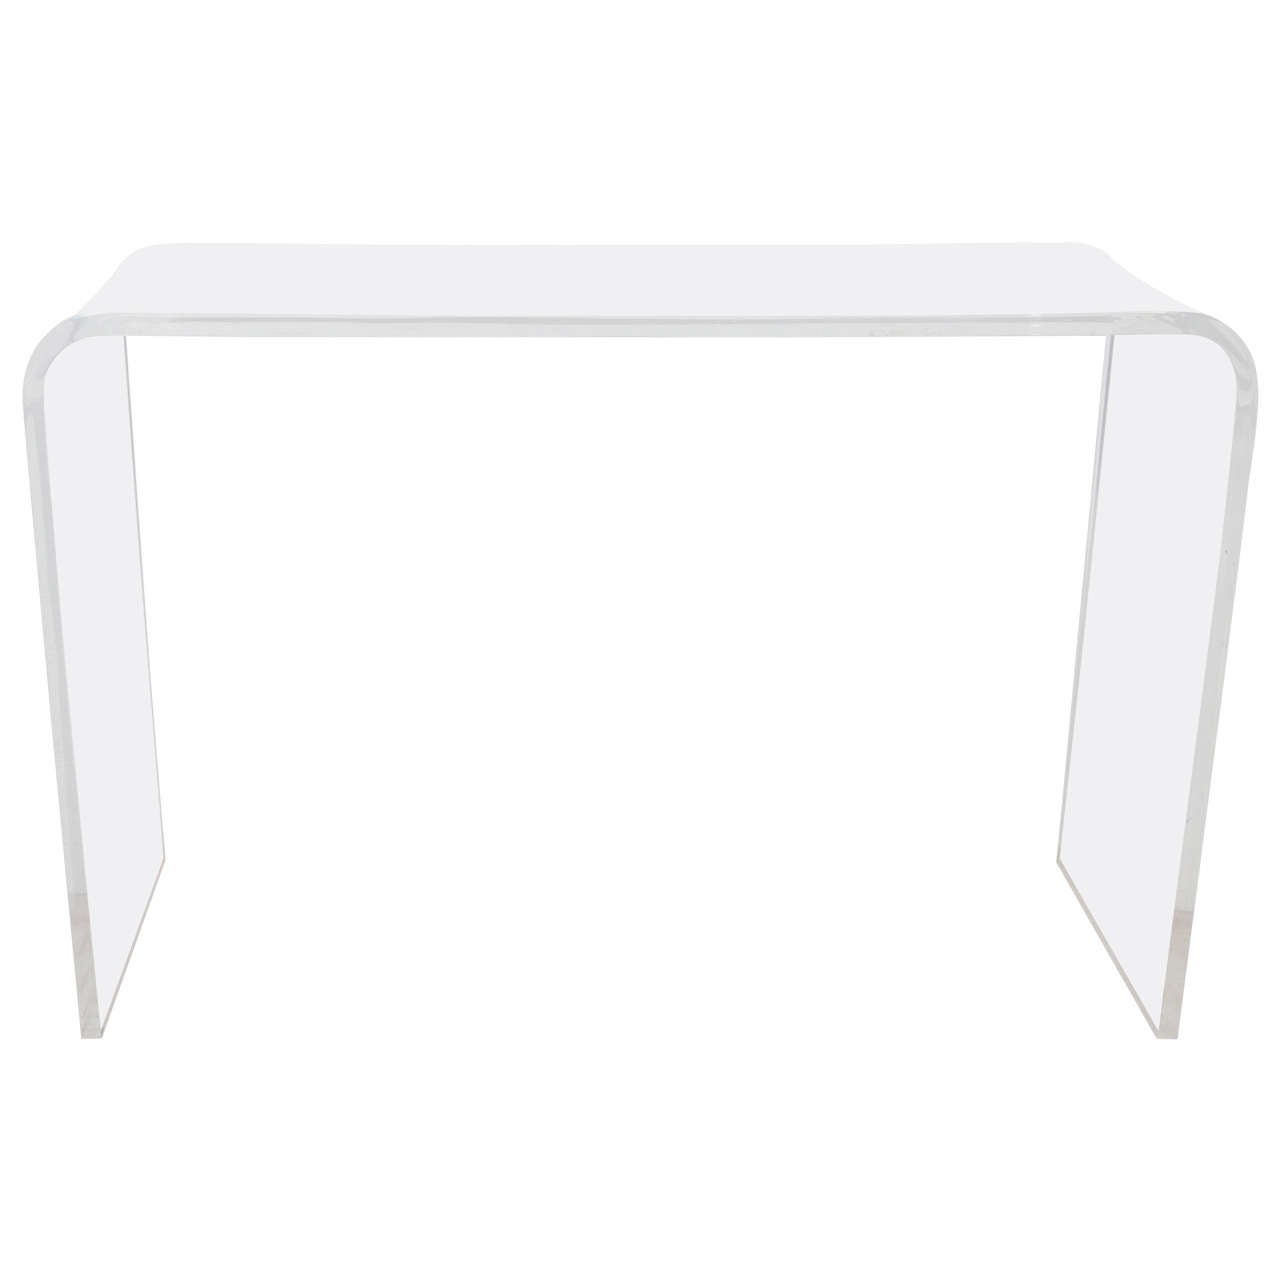 Vintage Modern Waterfall Lucite Console Table, 1970s For Sale